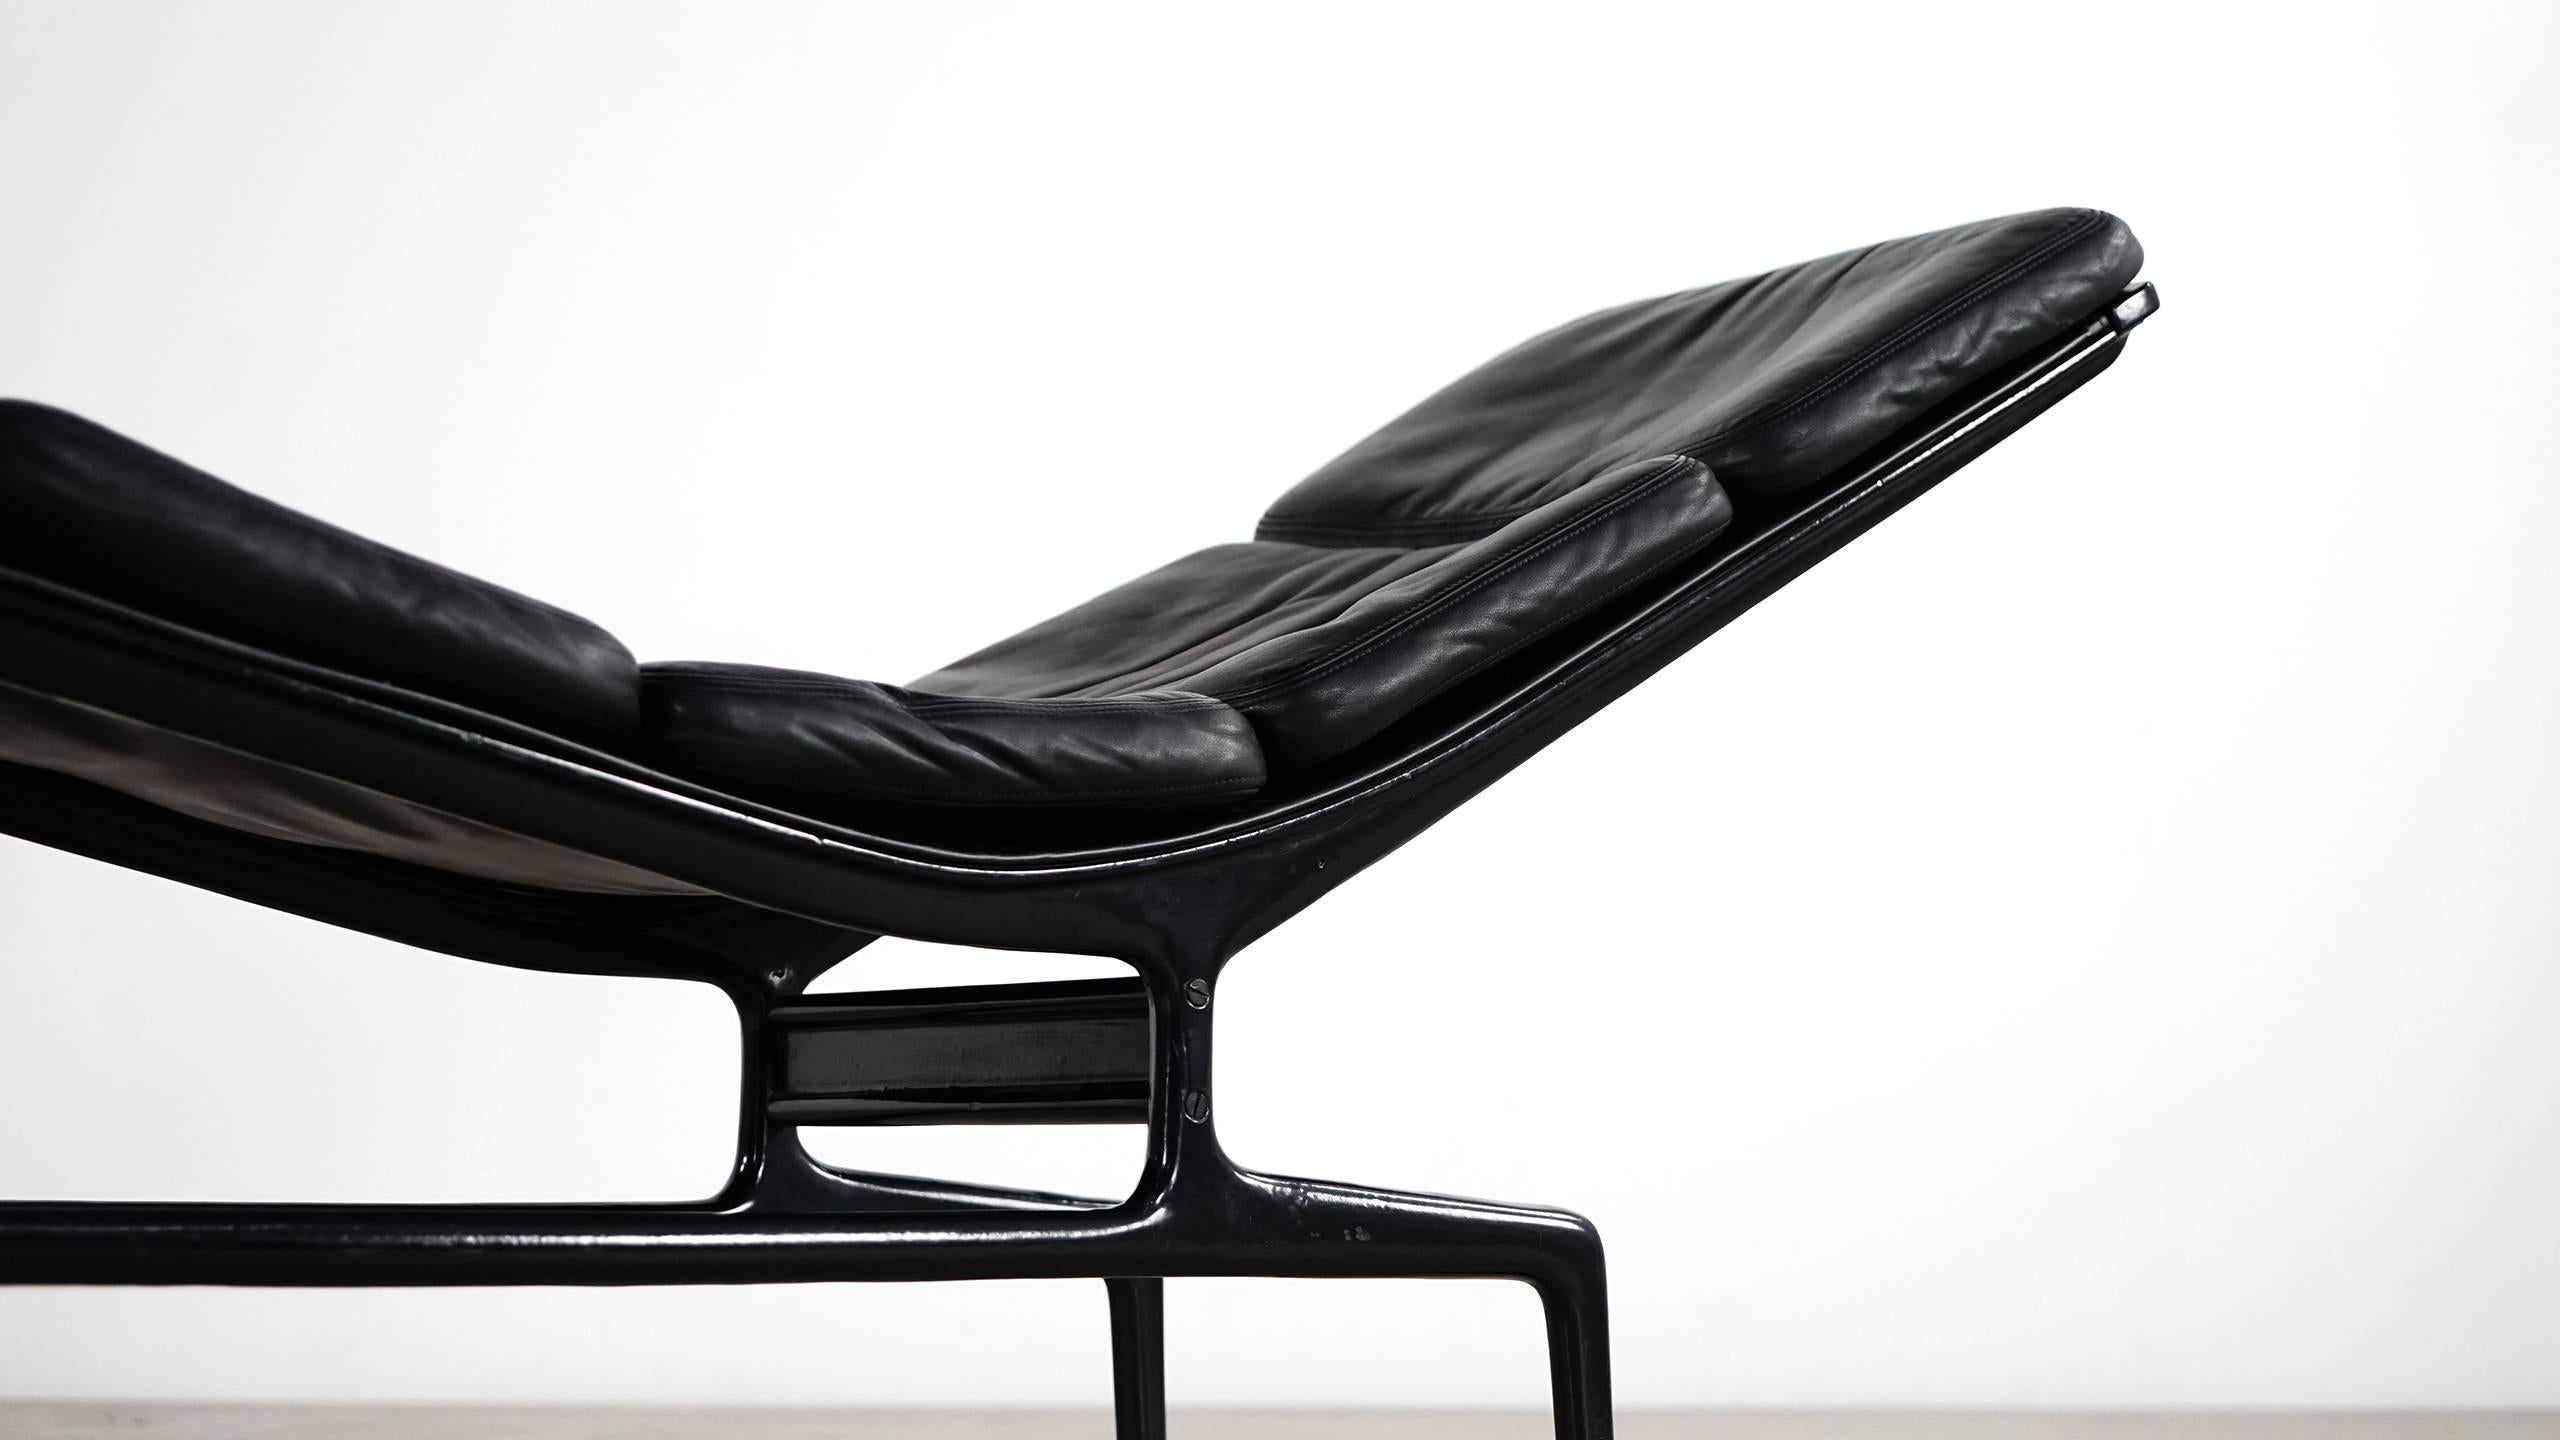 charles eames chaise latest chaise imitation eames chaise chaise bascule belle chaise a bascule. Black Bedroom Furniture Sets. Home Design Ideas